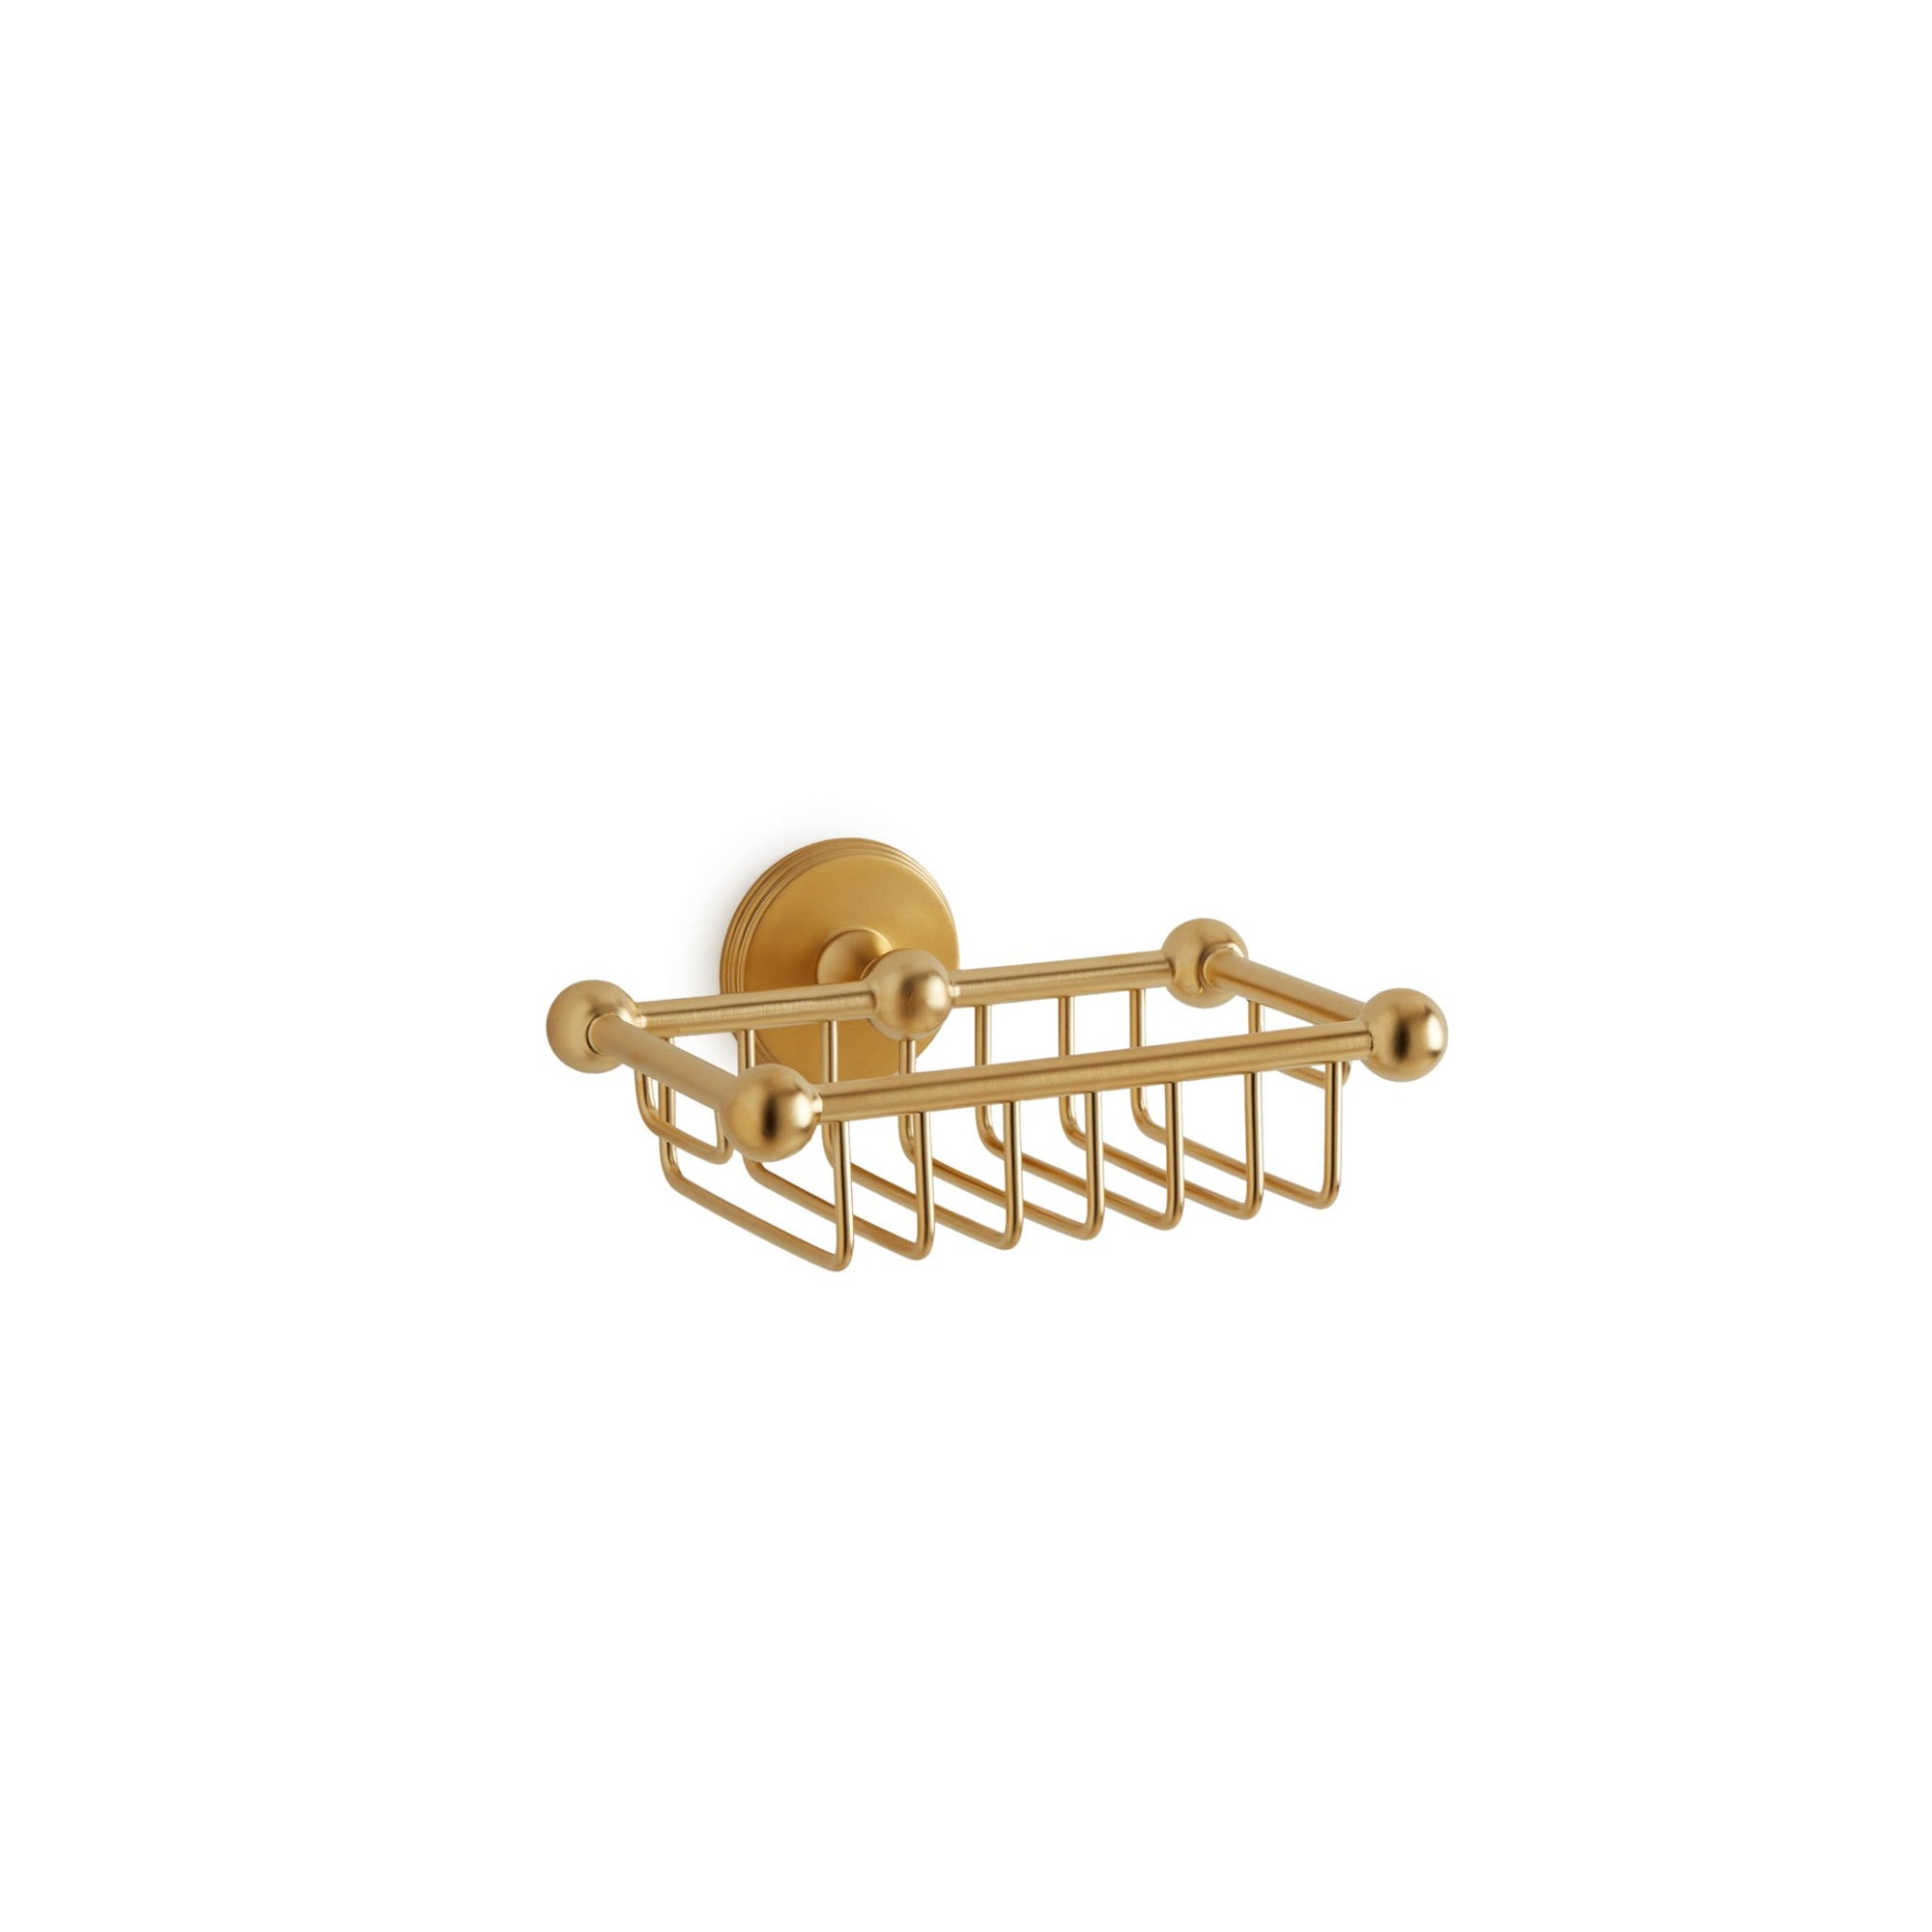 3804-GP Sherle Wagner International Wall Mounted Soap Basket in Gold Plate metal finish